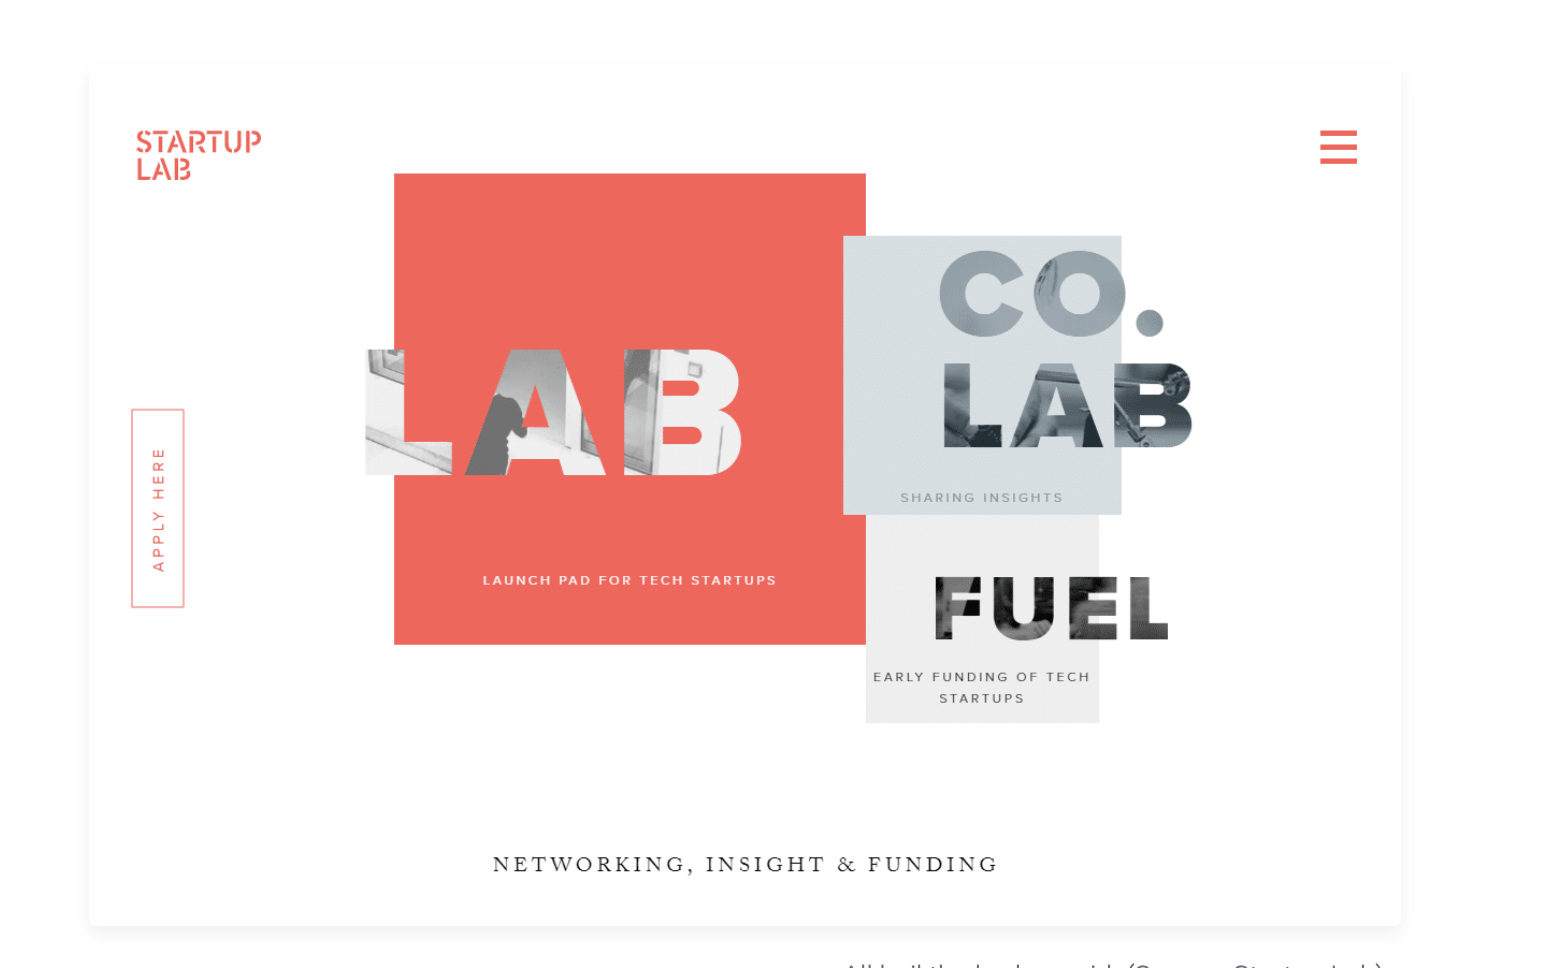 Startup lab website in 2019 was full of geometrical shapes